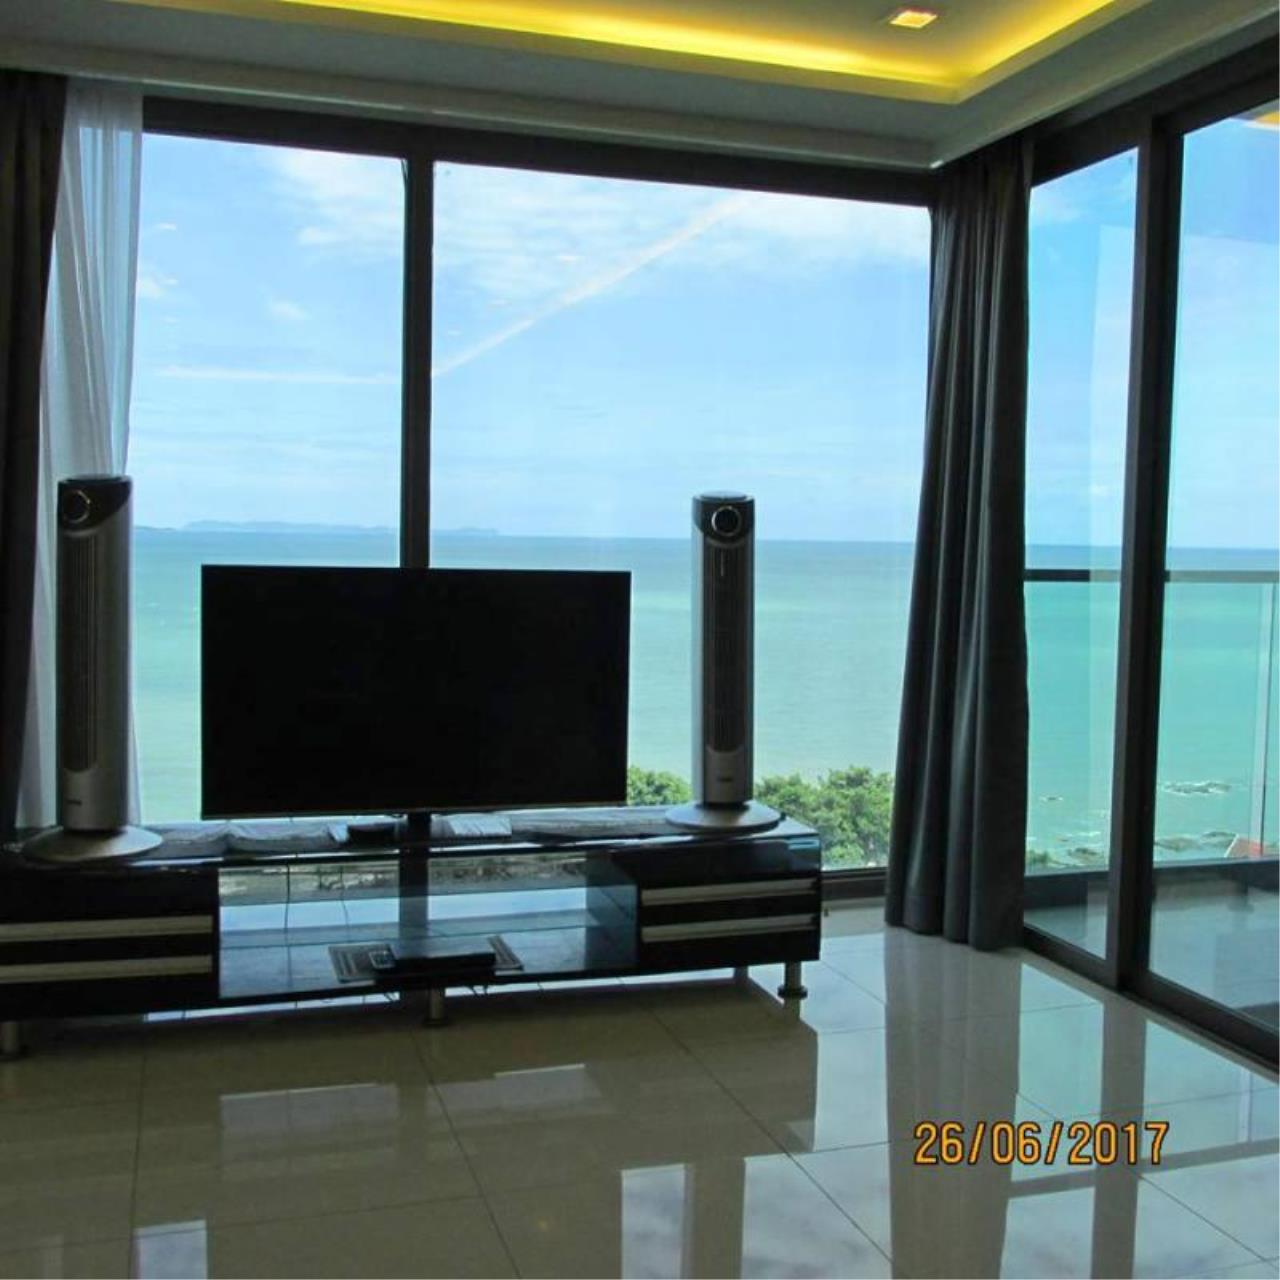 RE/MAX Town & Country Property Agency's Luxury beachfront condo in Wongamat 6